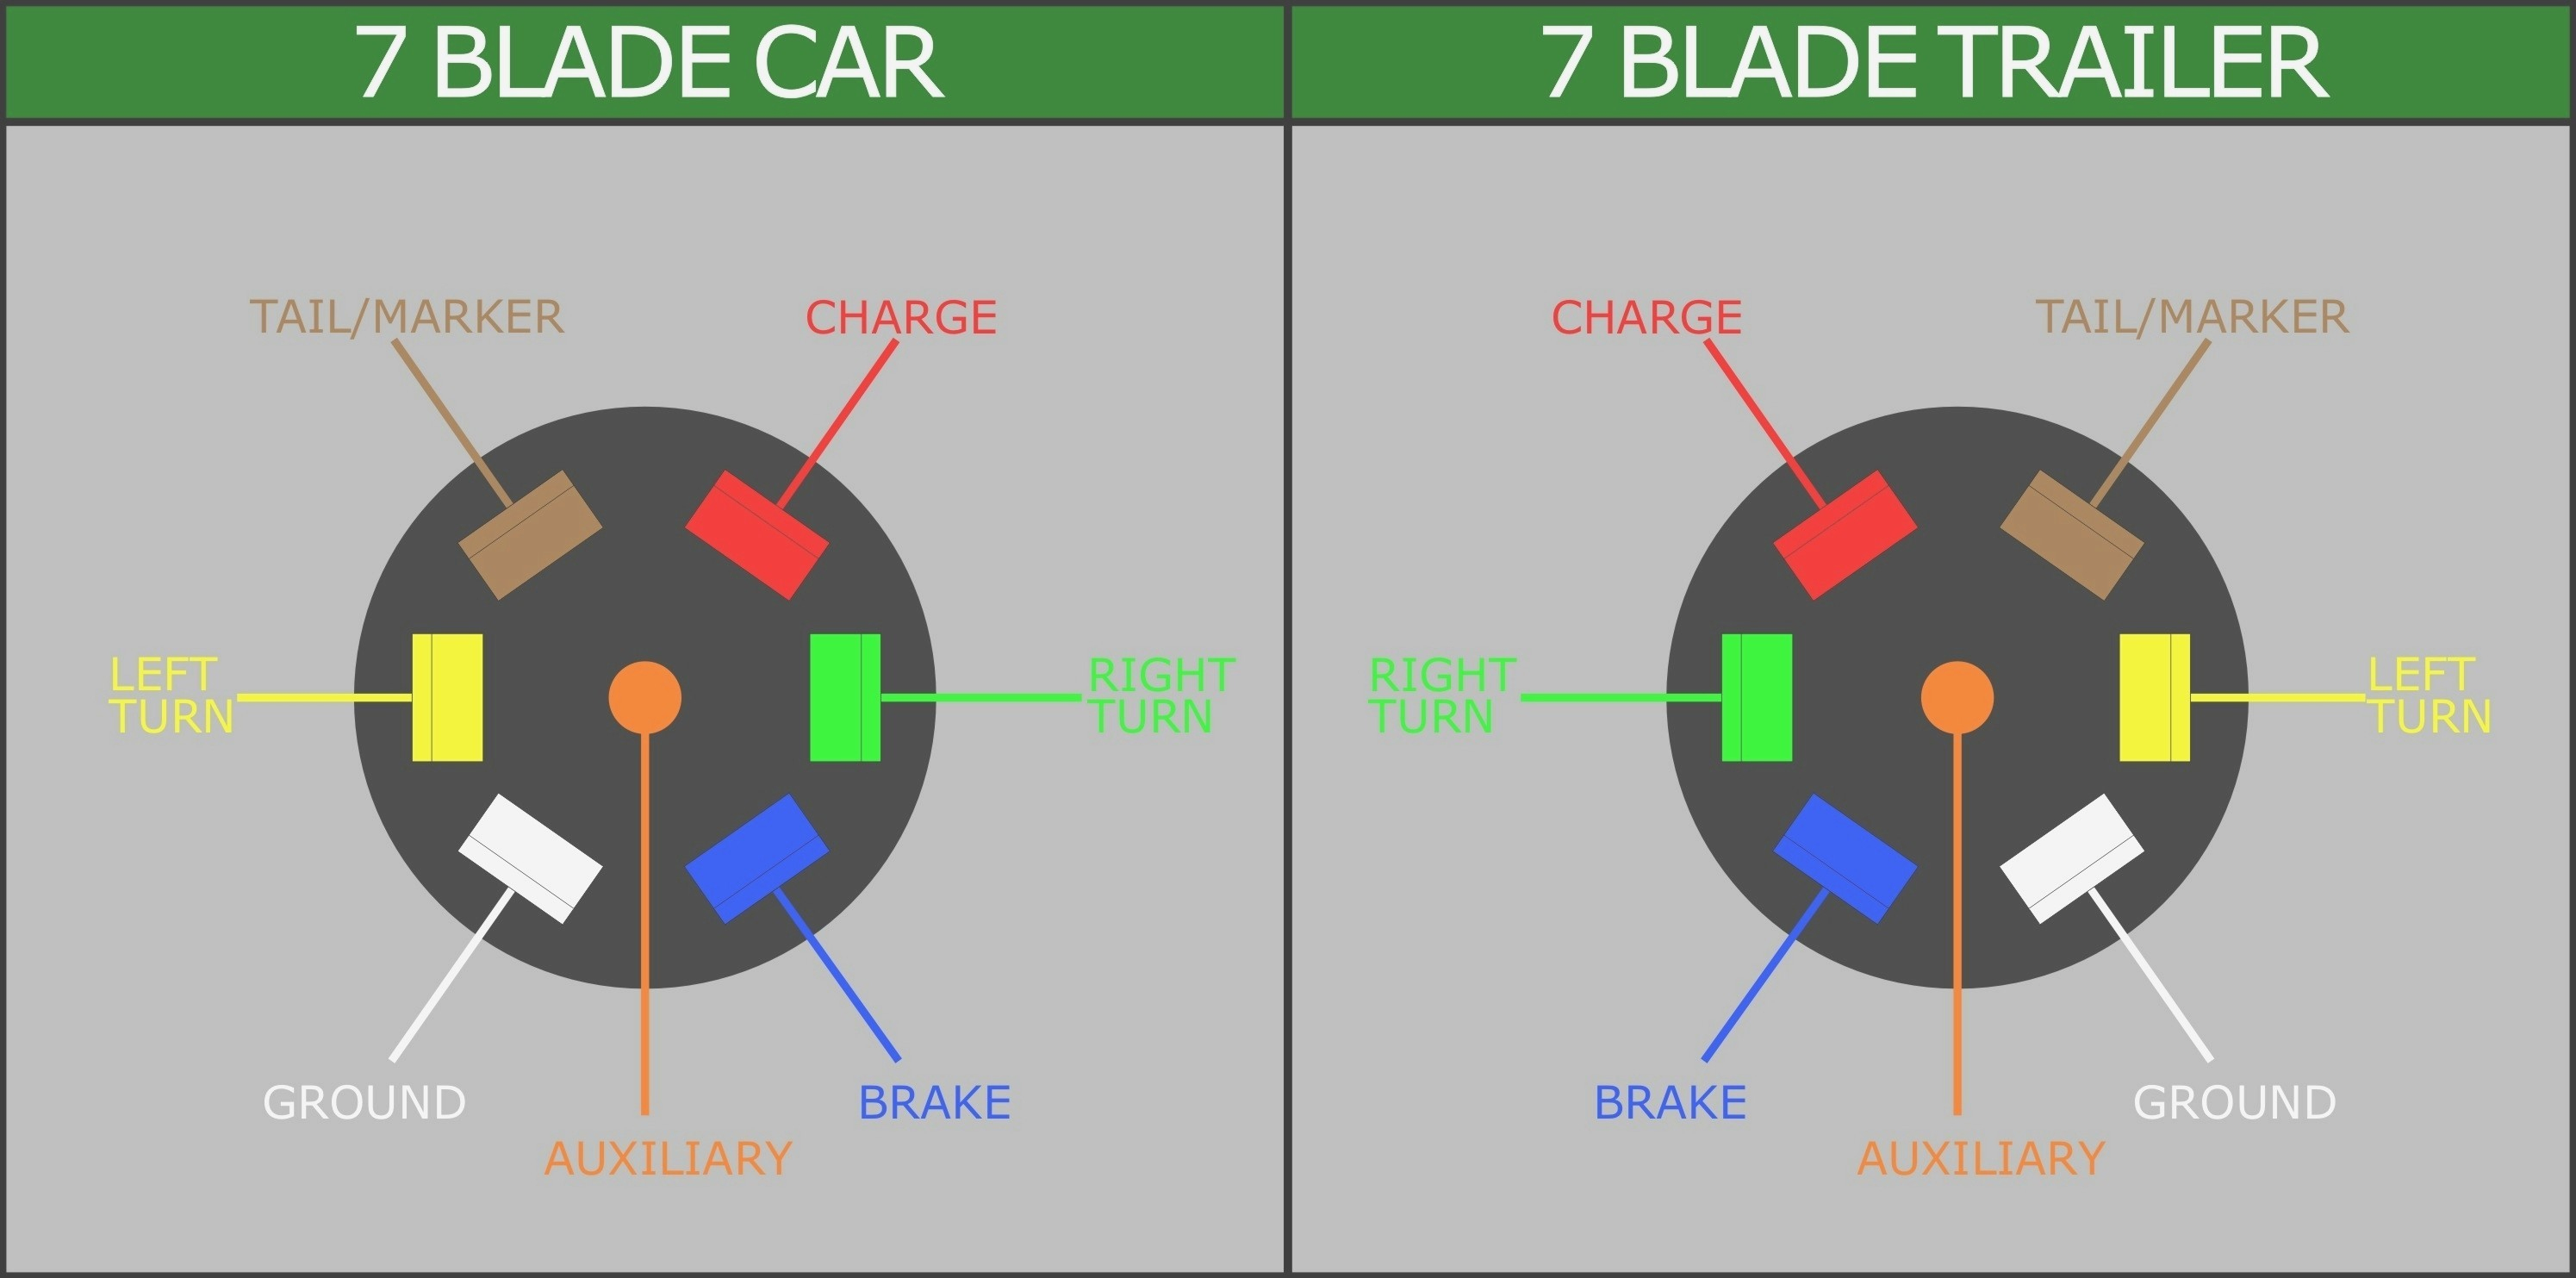 7 Blade Truck Wiring Diagram - Wiring Diagram Explained - Trailer Wiring Diagram 7 Pin